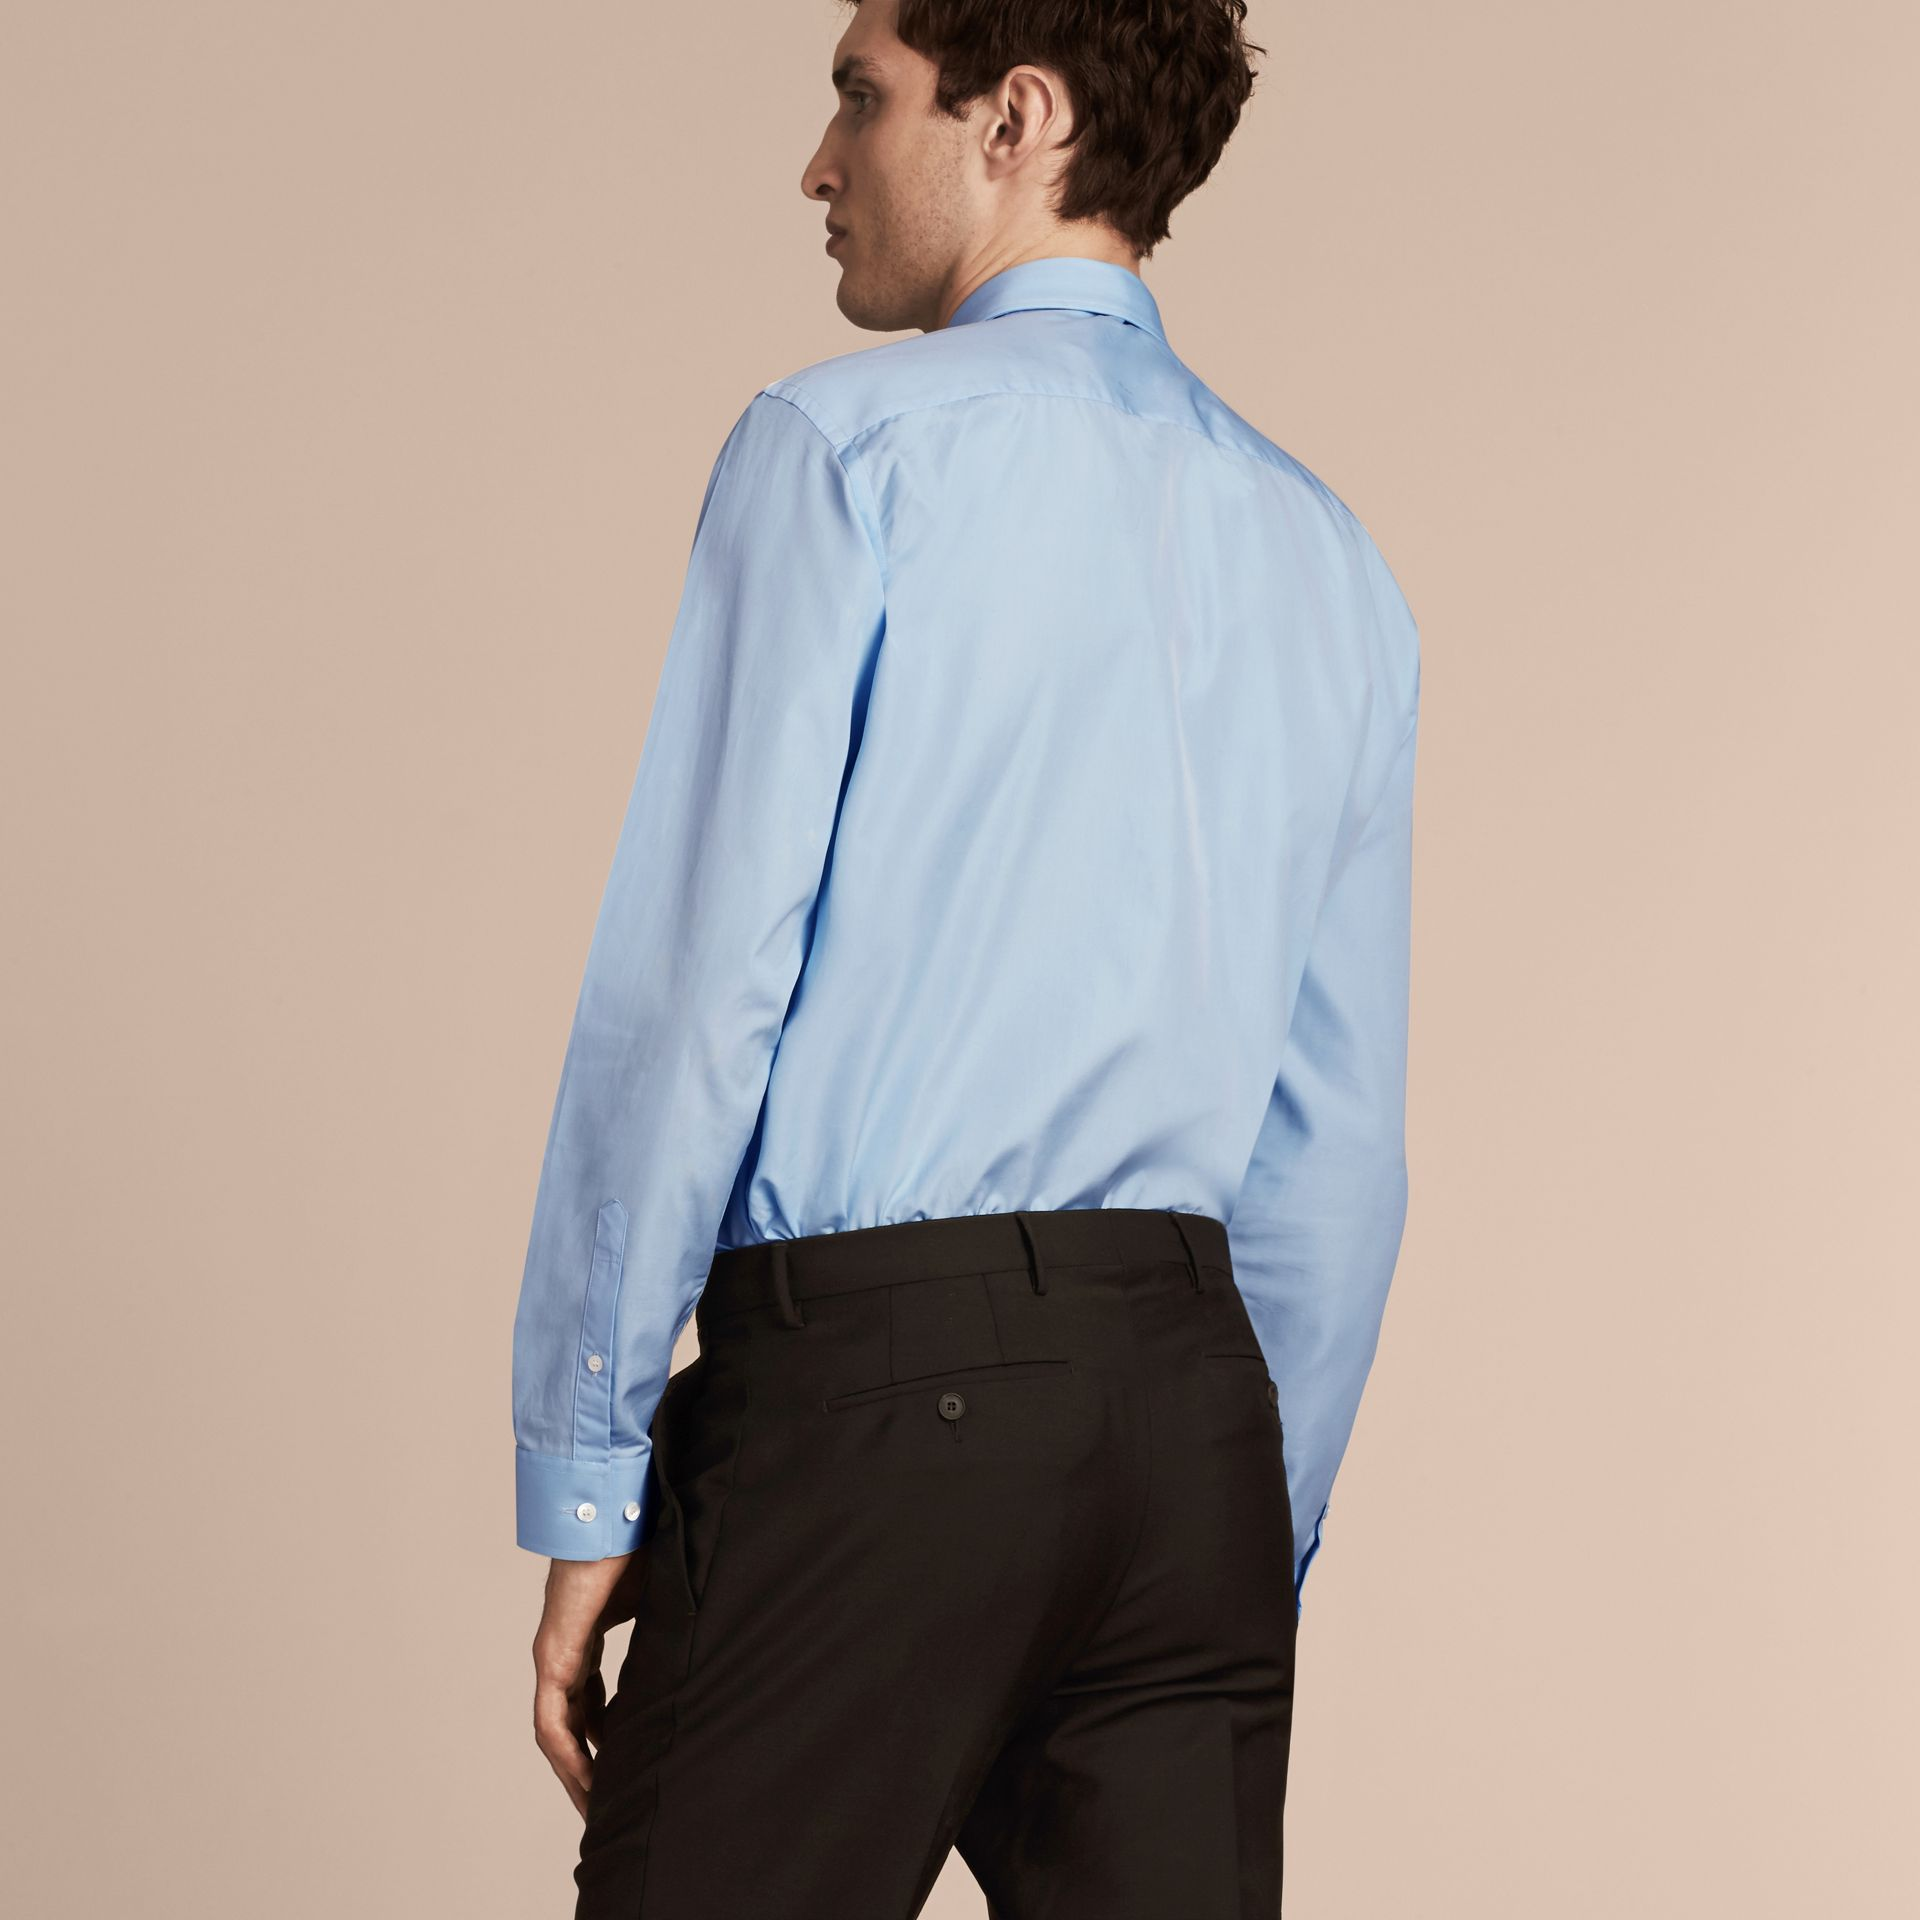 City blue Modern Fit Cotton Poplin Shirt City Blue - gallery image 3